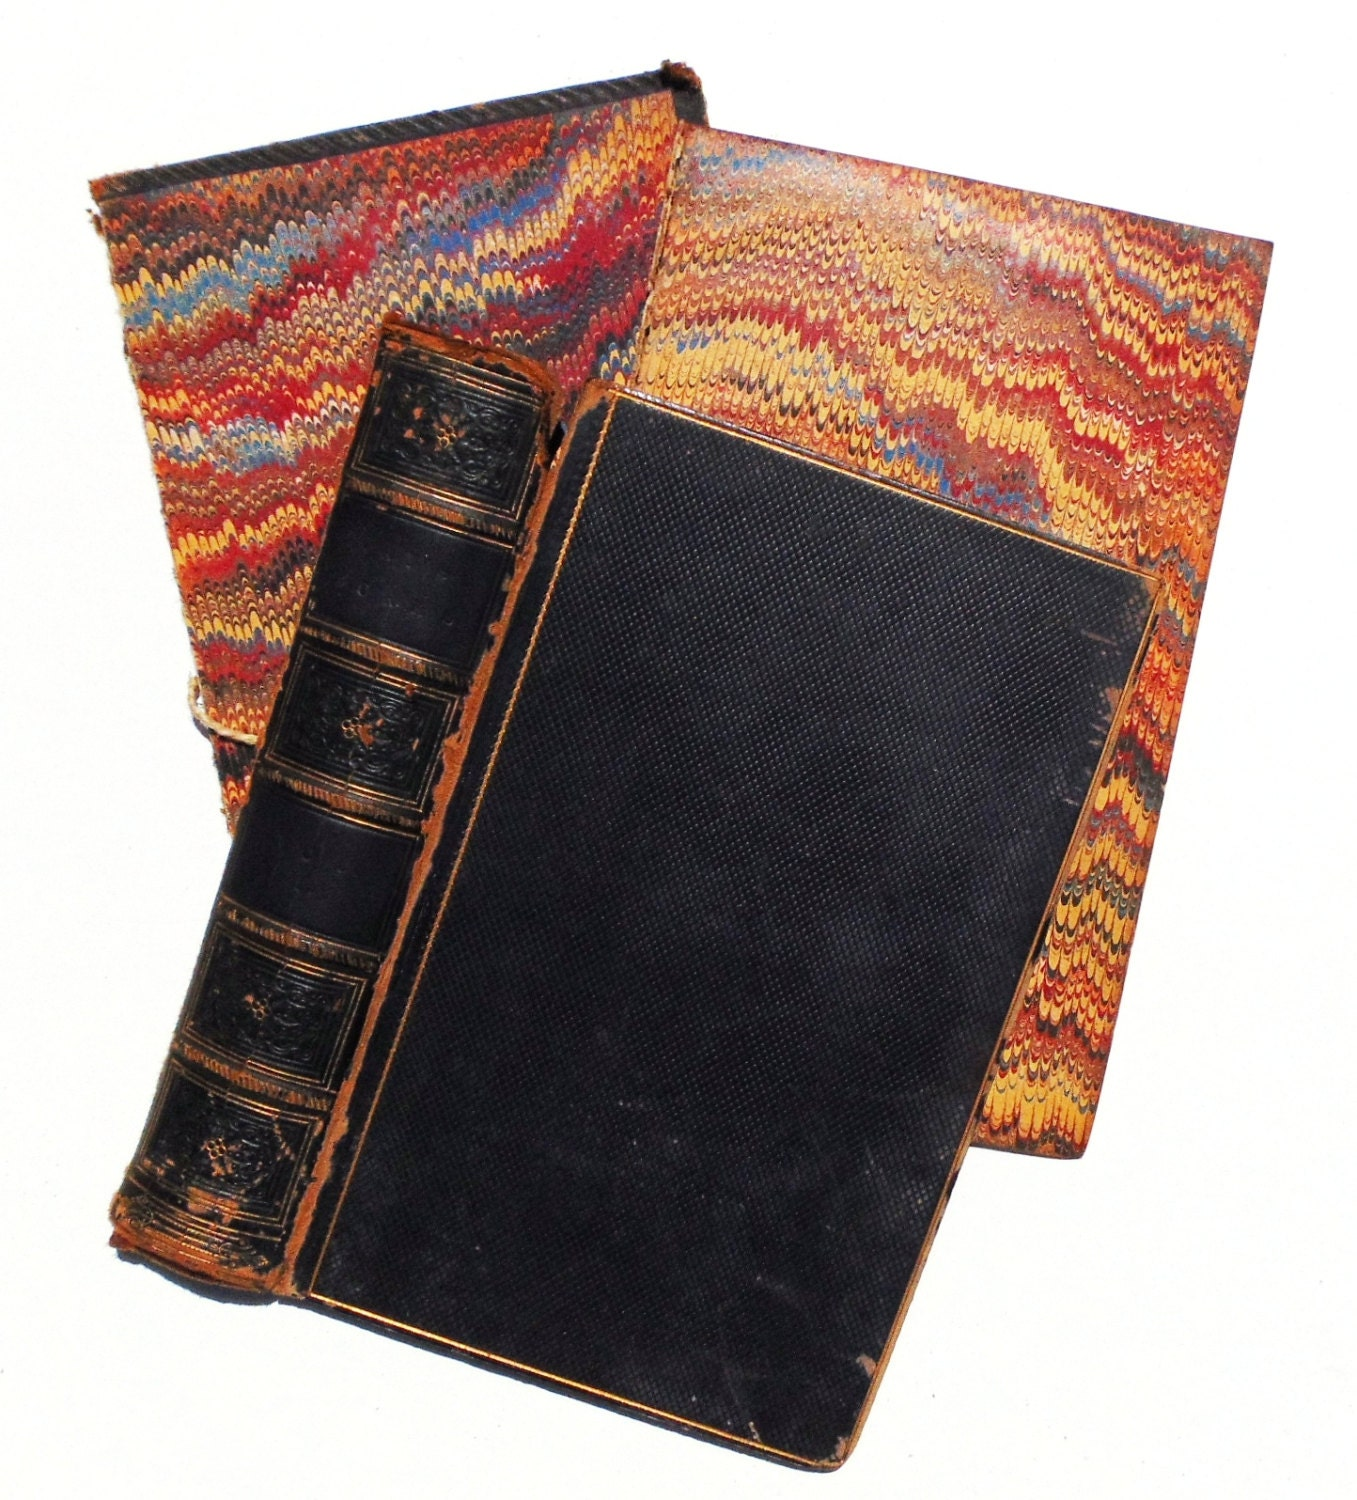 Black Leather Book Cover ~ Antique black leather book covers